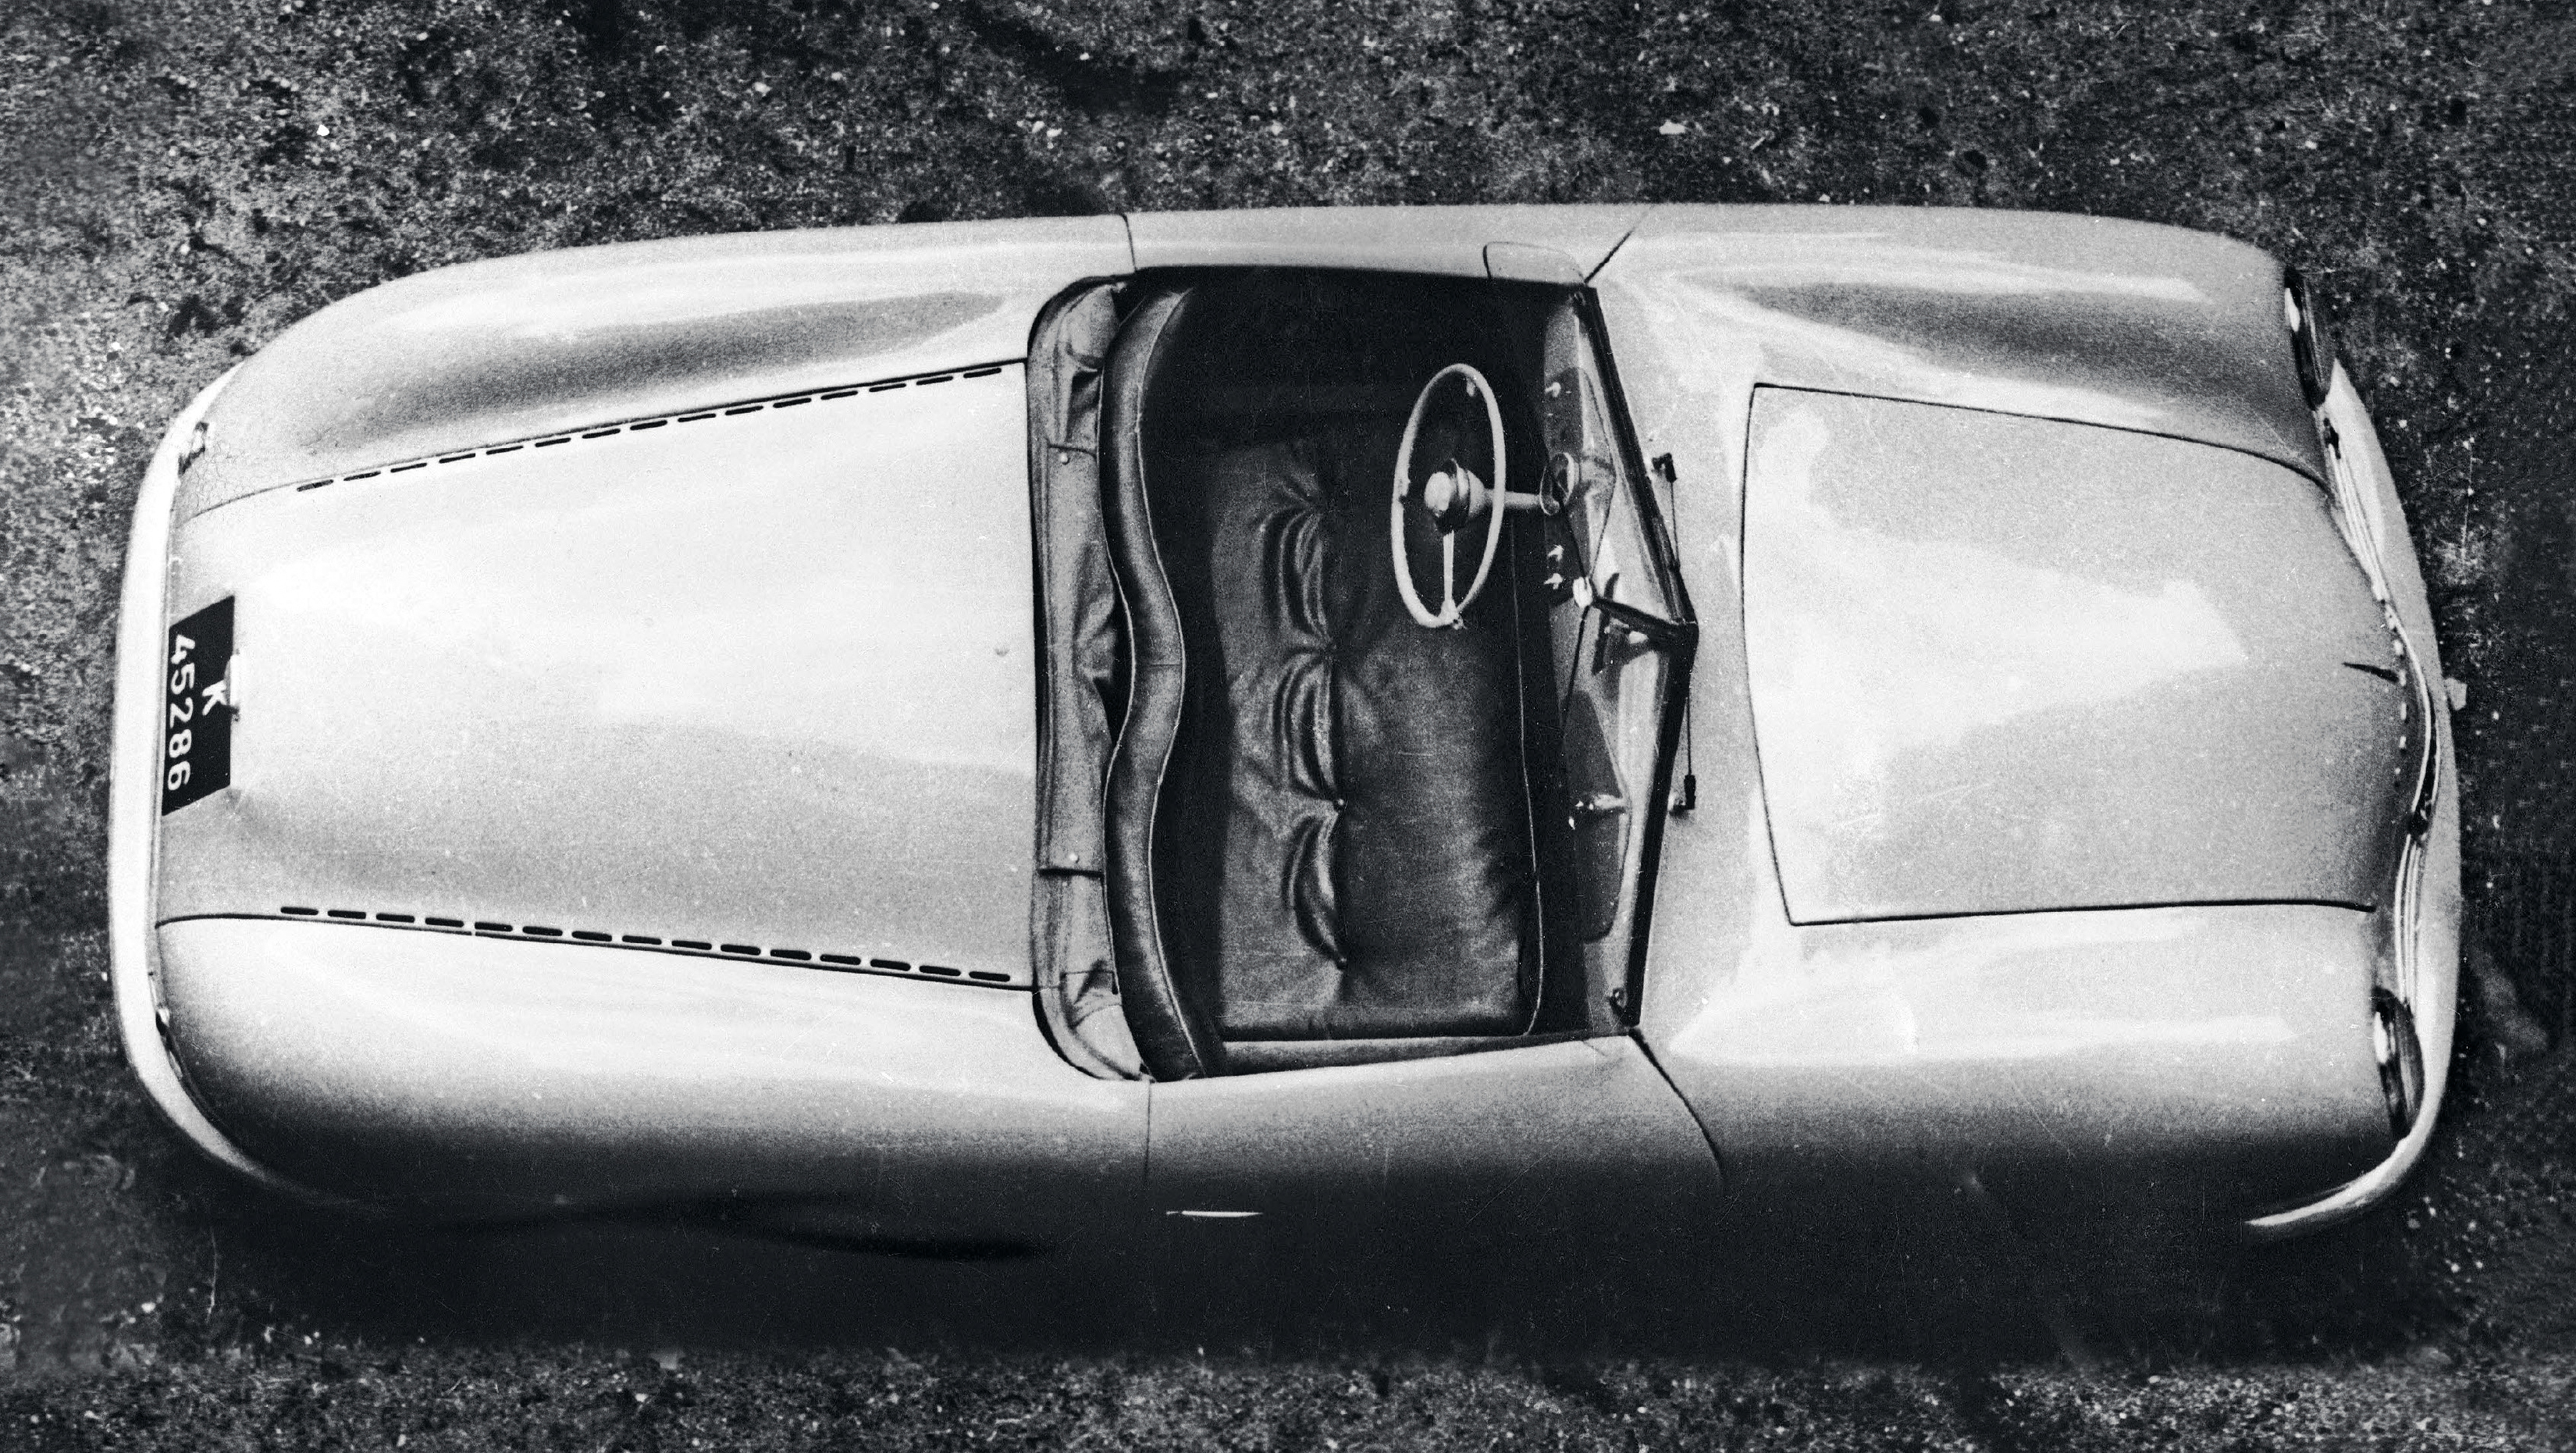 A period photo of the first Porsche roadster in original form | Porsche Museum archive